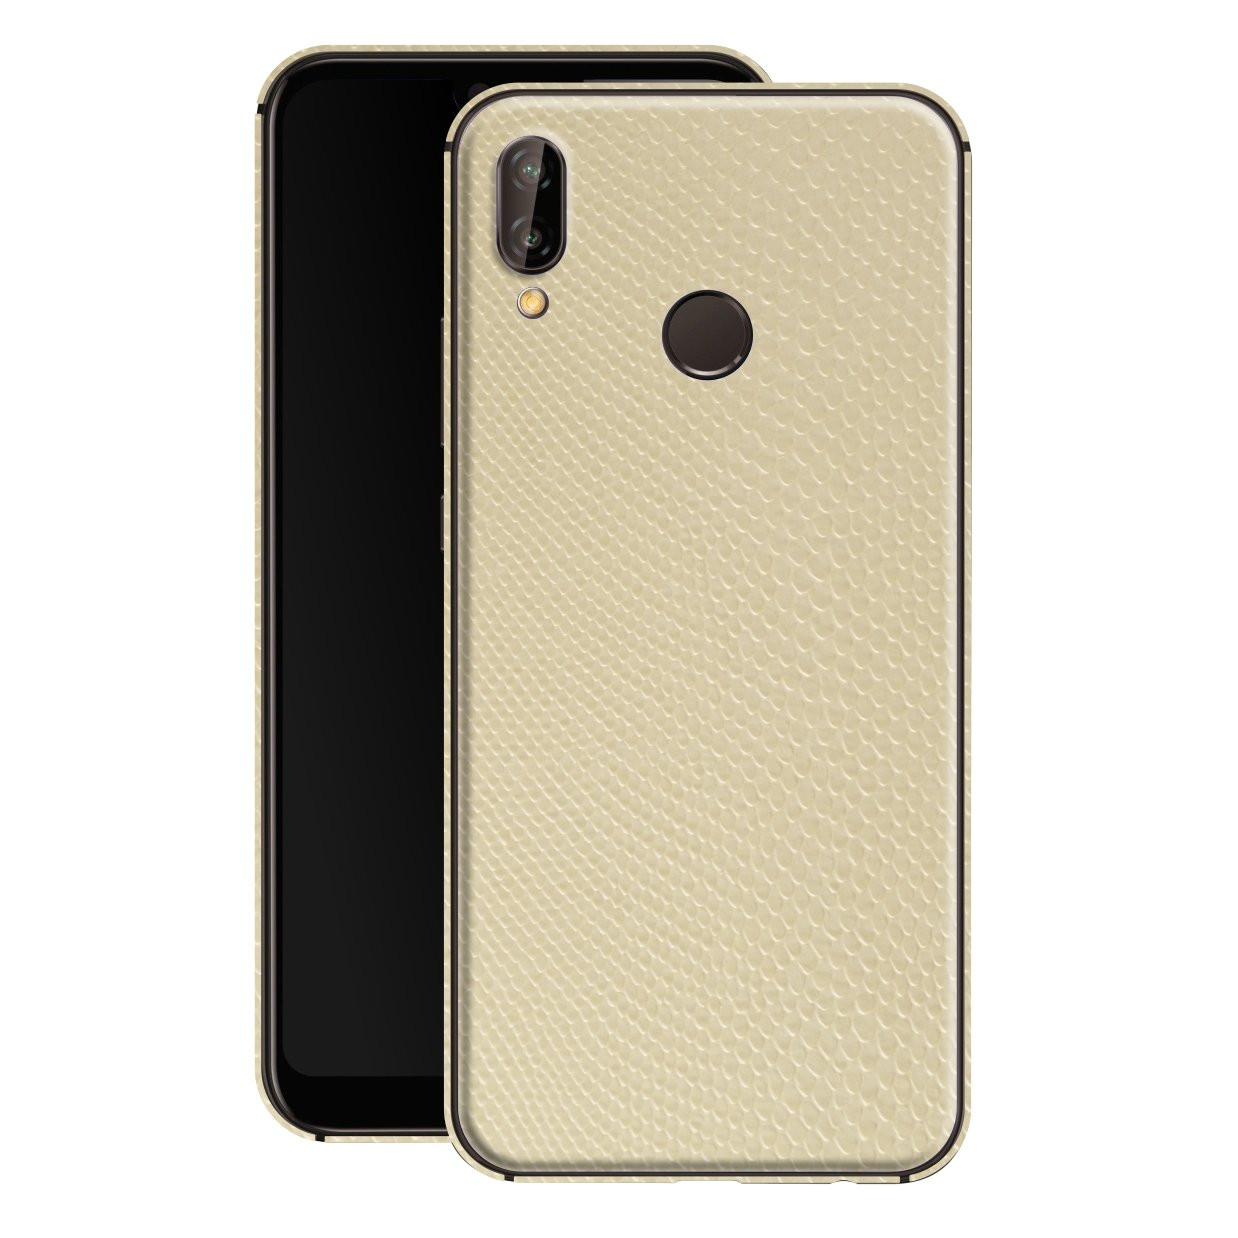 Huawei P20 LITE Beige Mamba Snake Leather Skin, Decal, Wrap, Protector, Cover by EasySkinz | EasySkinz.com